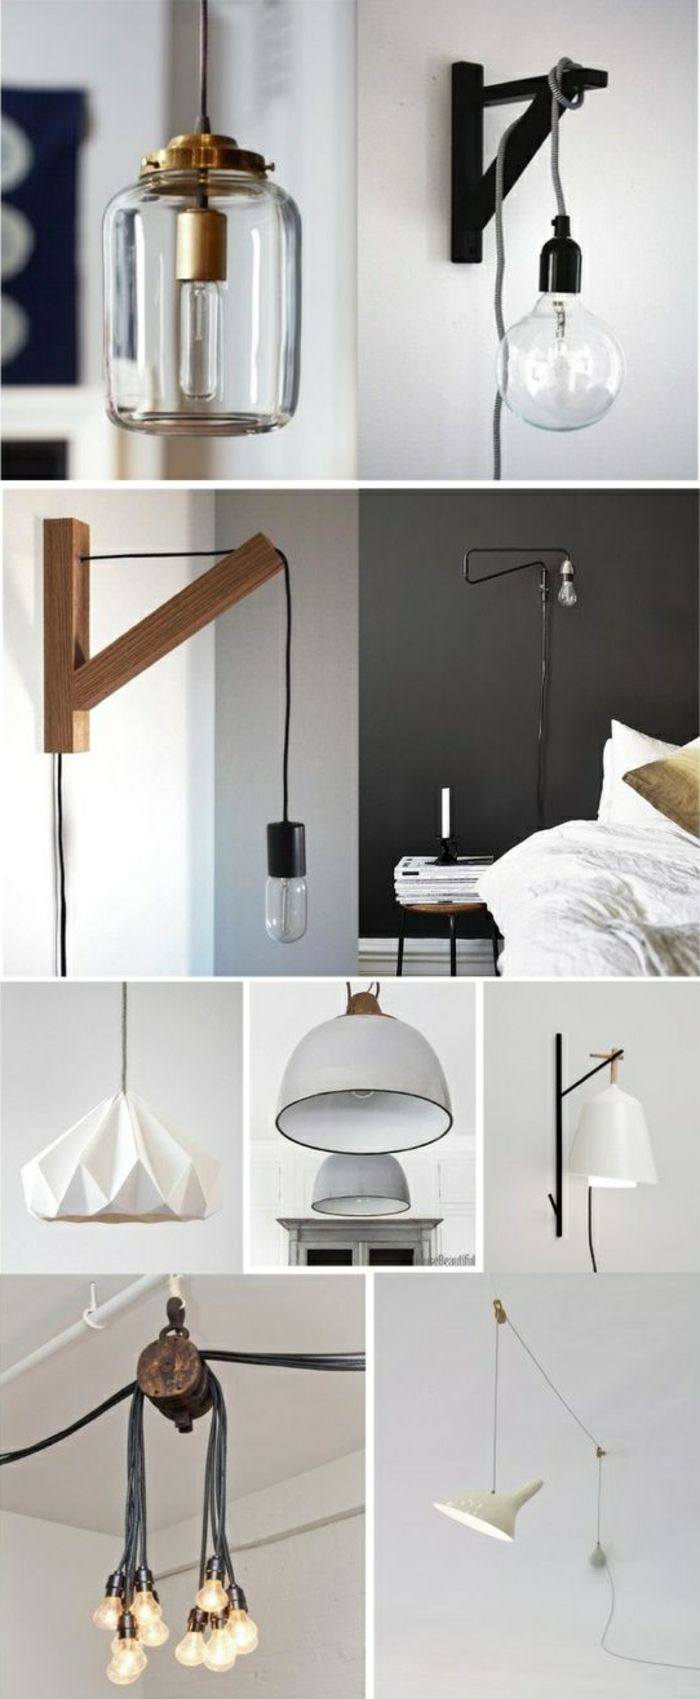 die besten 25 industrie stil inneneinrichtung ideen auf. Black Bedroom Furniture Sets. Home Design Ideas